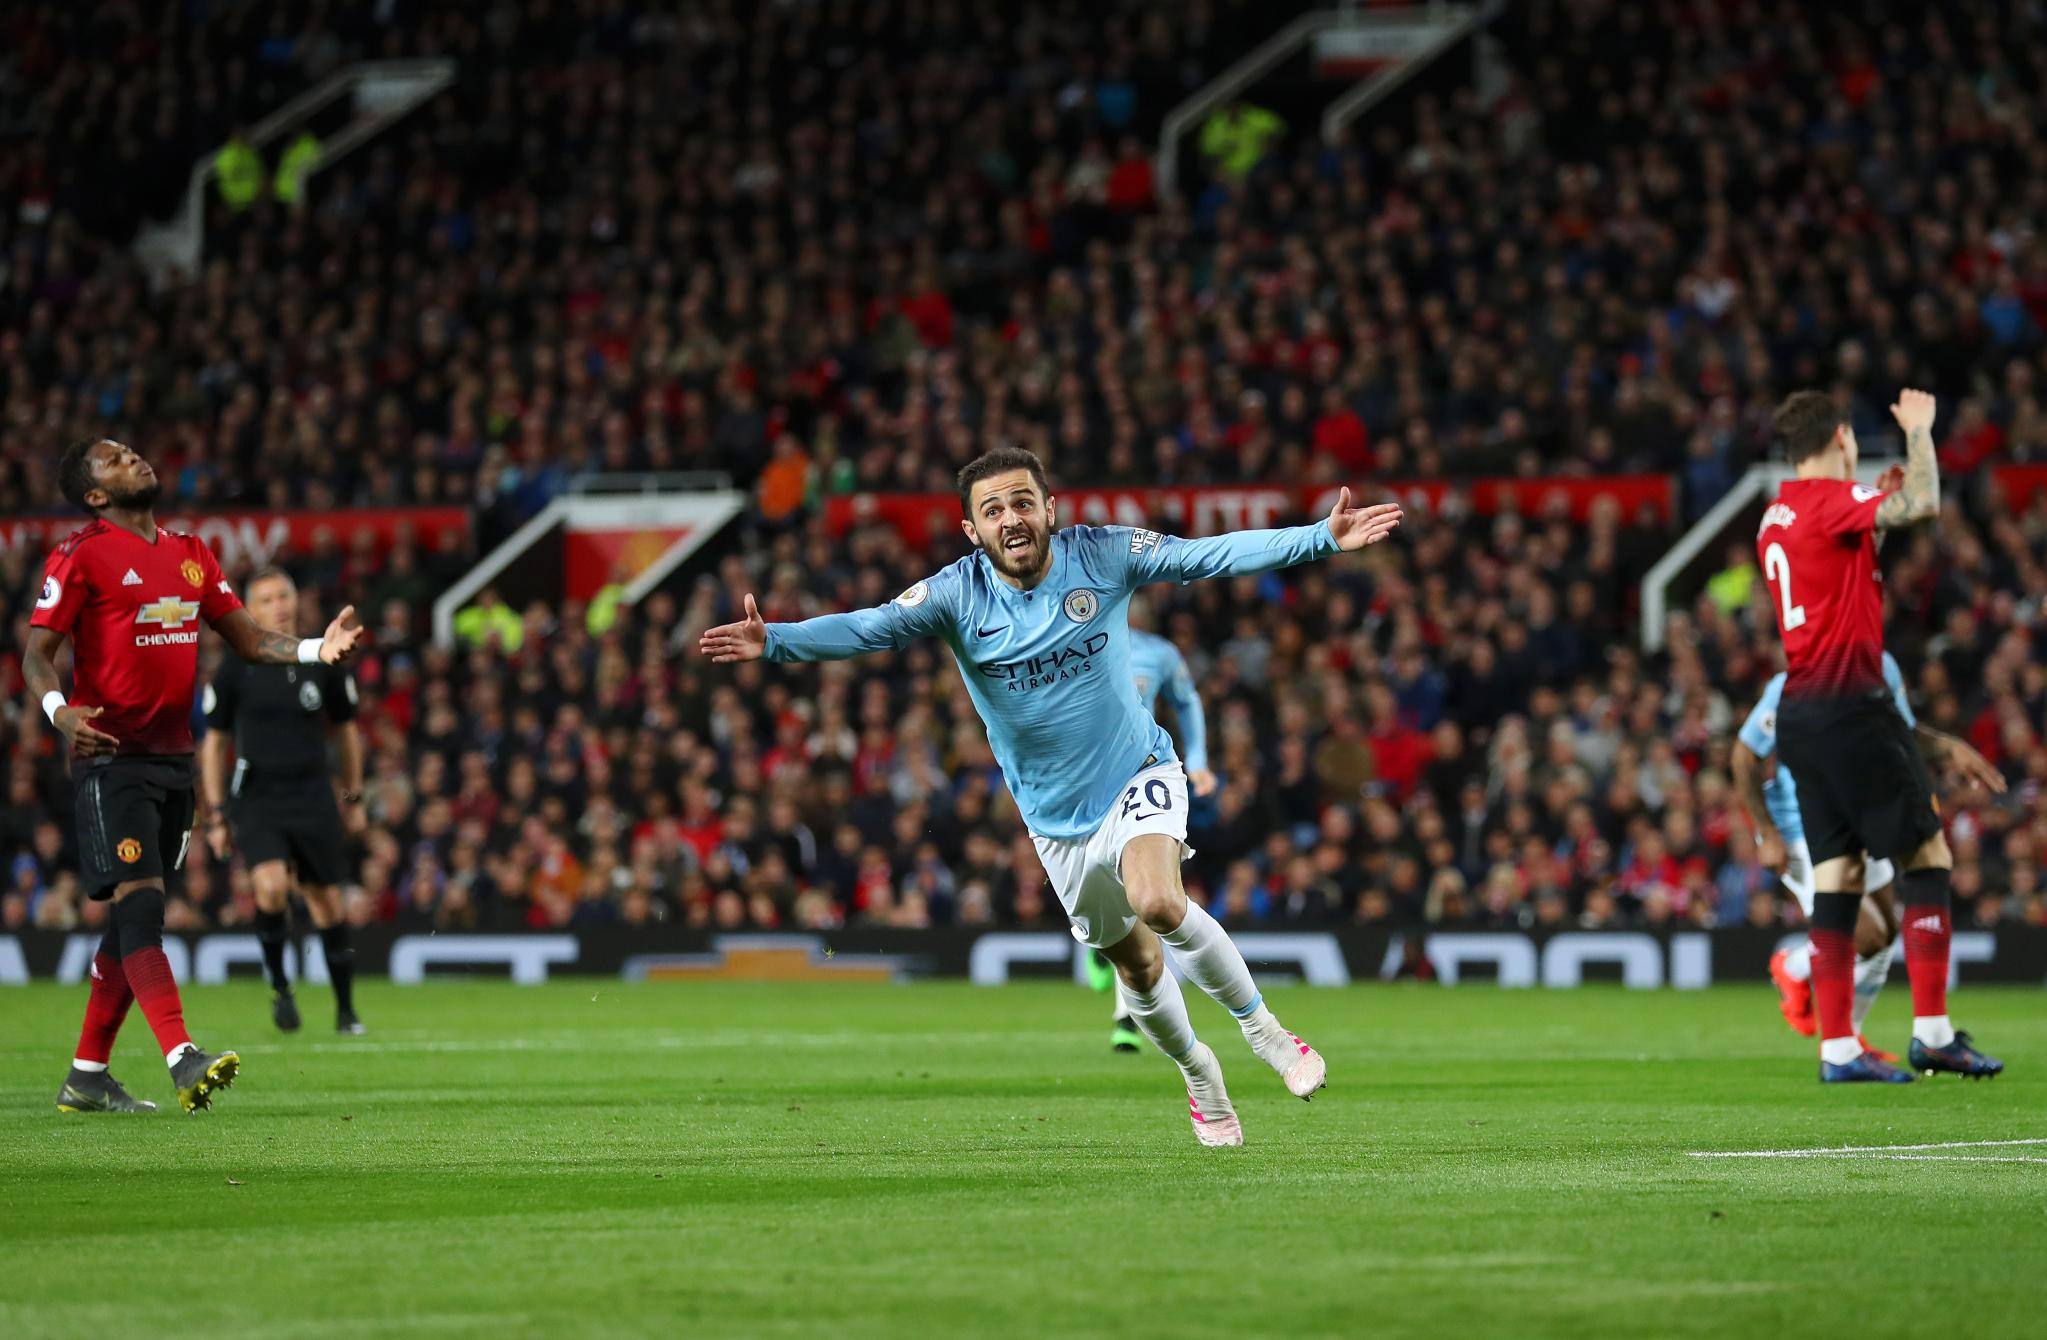 manchester united-manchester city - photo #26